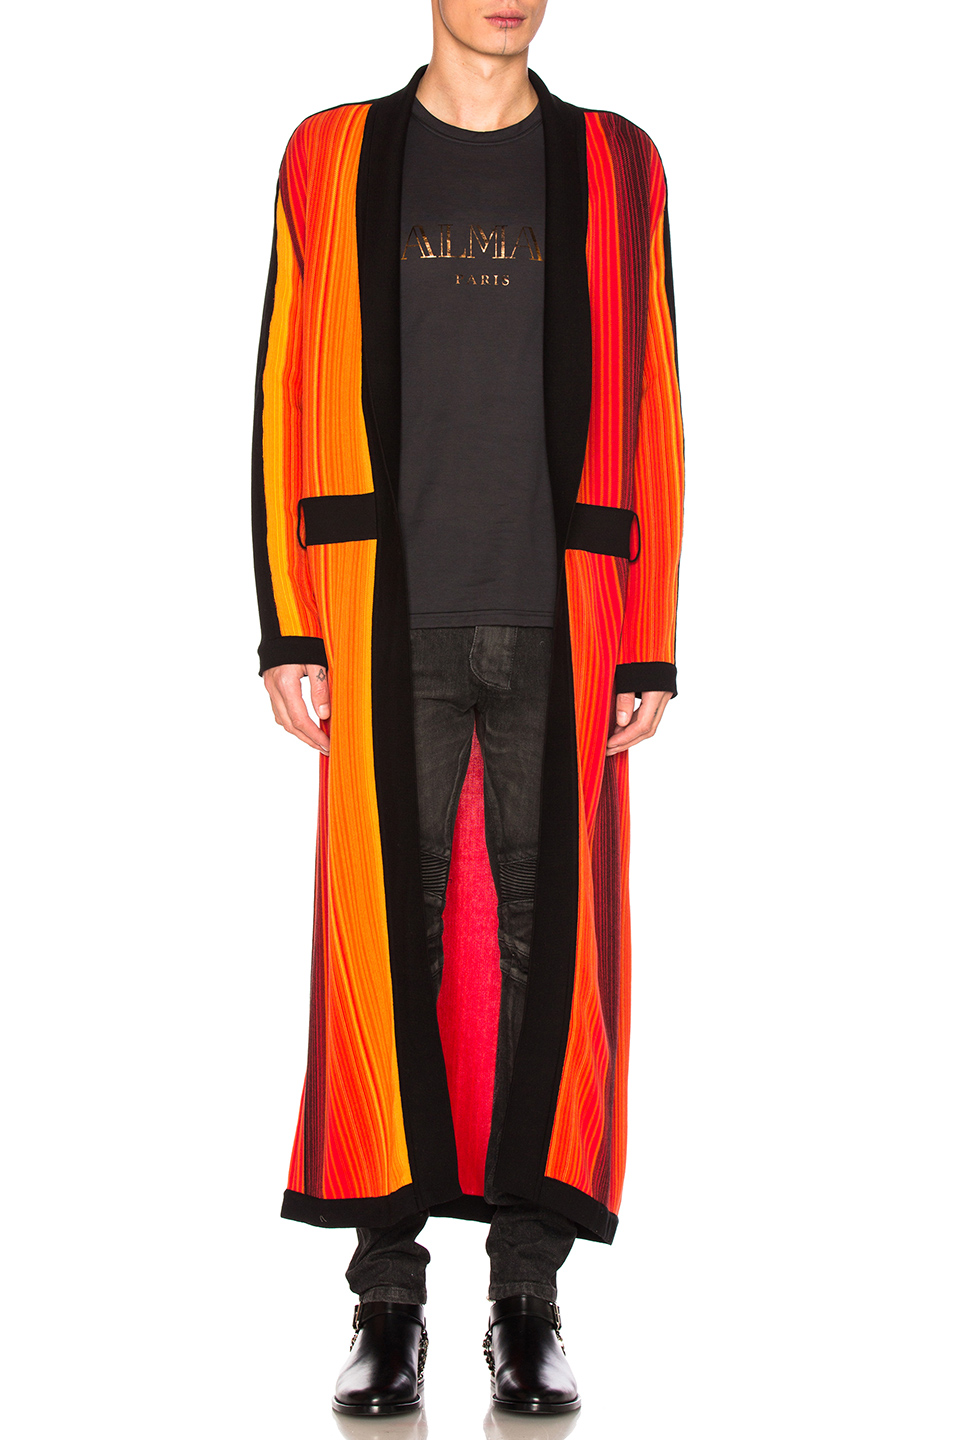 BALMAIN Striped Robe Sweater in Orange,Stripes